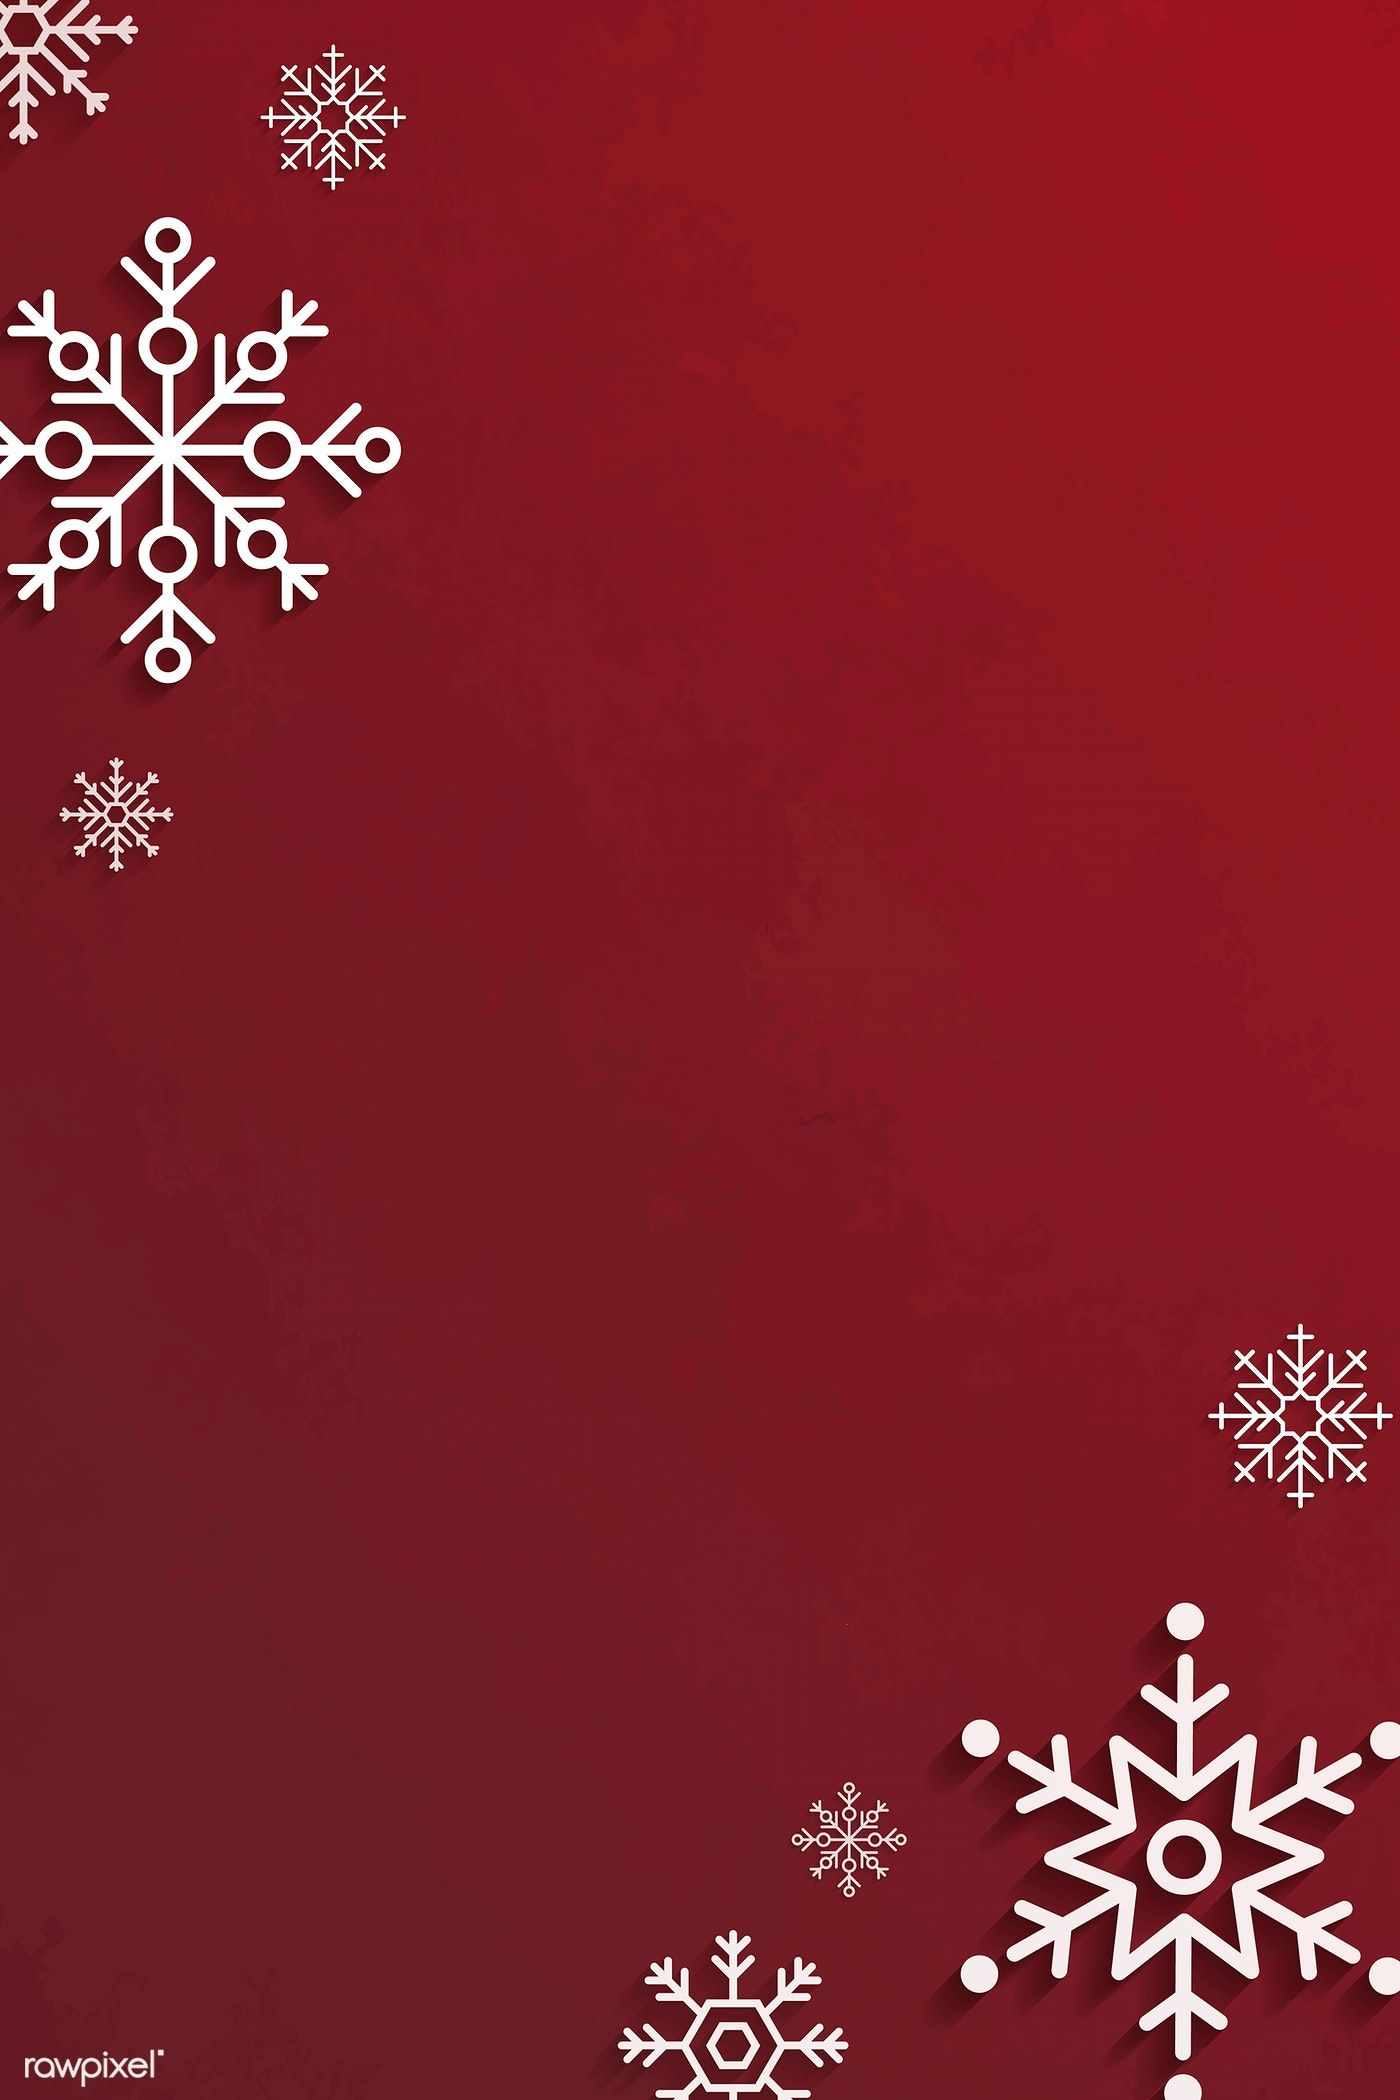 Download Premium Vector Of Snowflake Christmas Frame Design On A Red Christmas Frames Wallpaper Iphone Christmas Cute Christmas Wallpaper